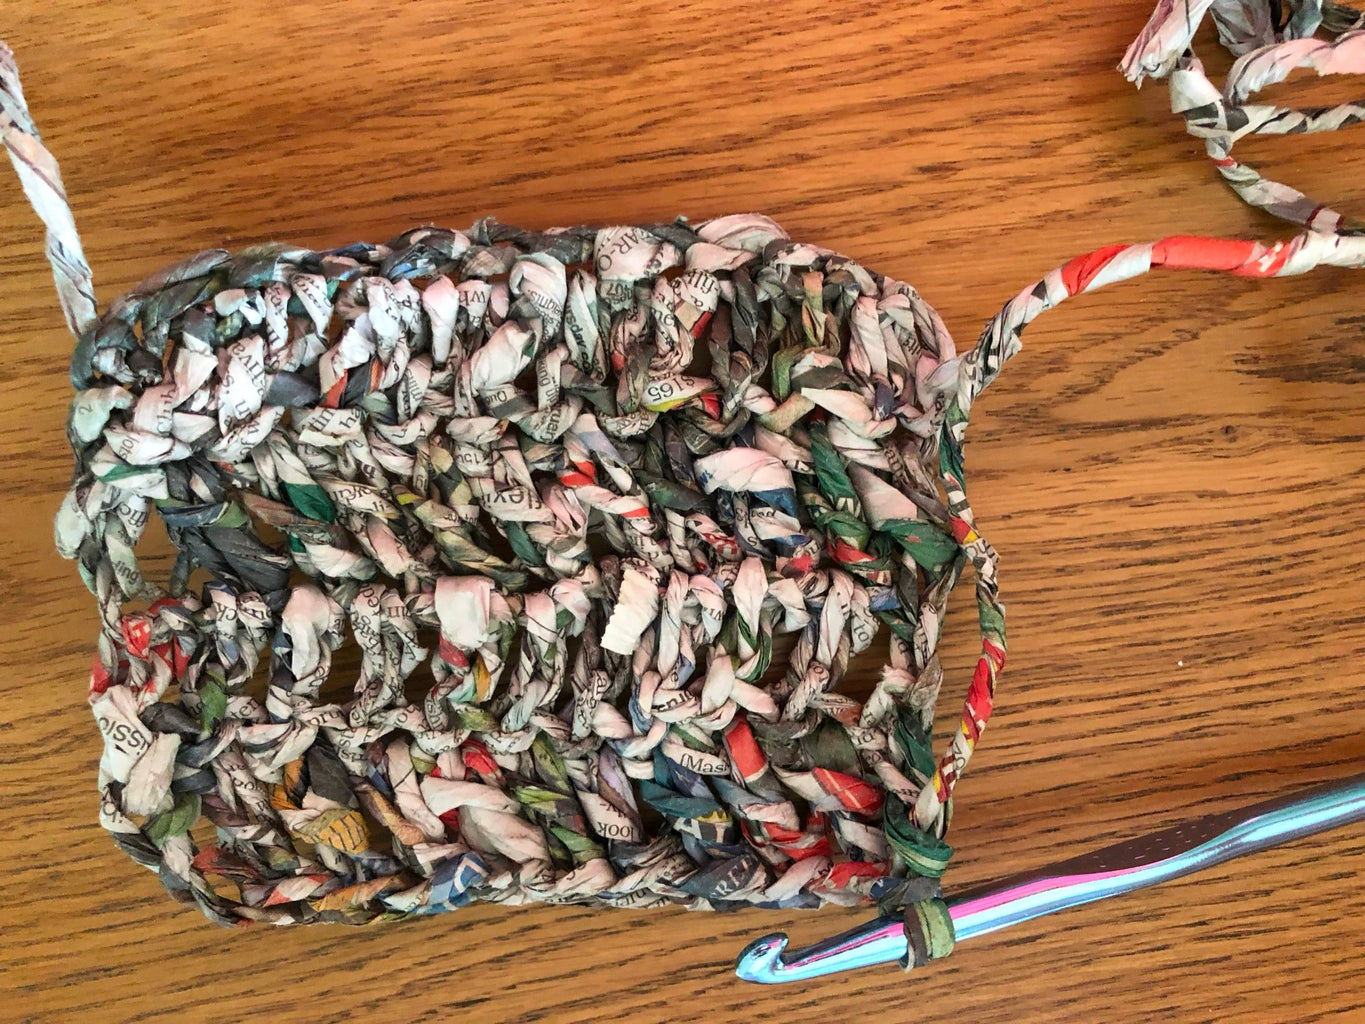 What Can You Do With the Yarn?